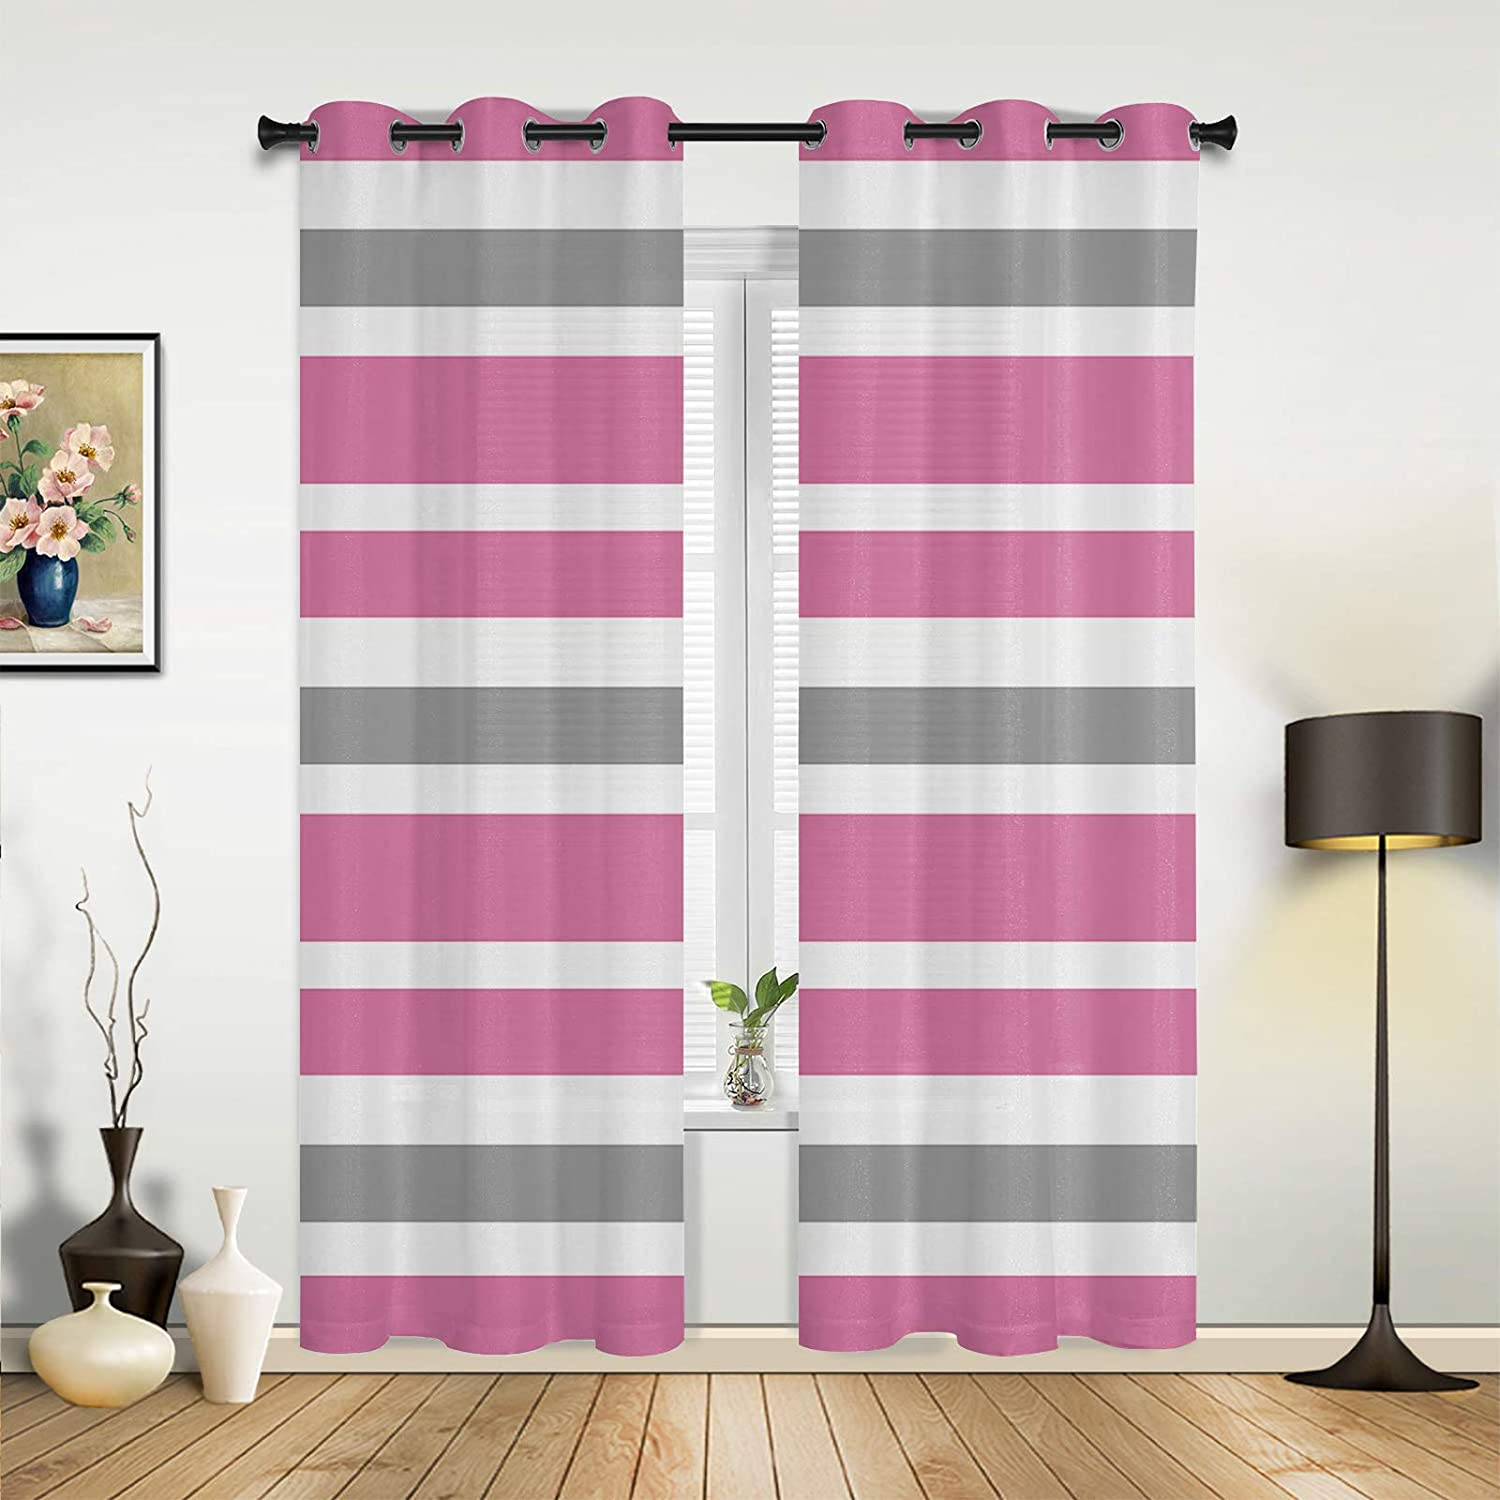 Window Sheer Cheap SALE Start Curtains for Bedroom Max 64% OFF Living Gray Room Sweet Mi Pink